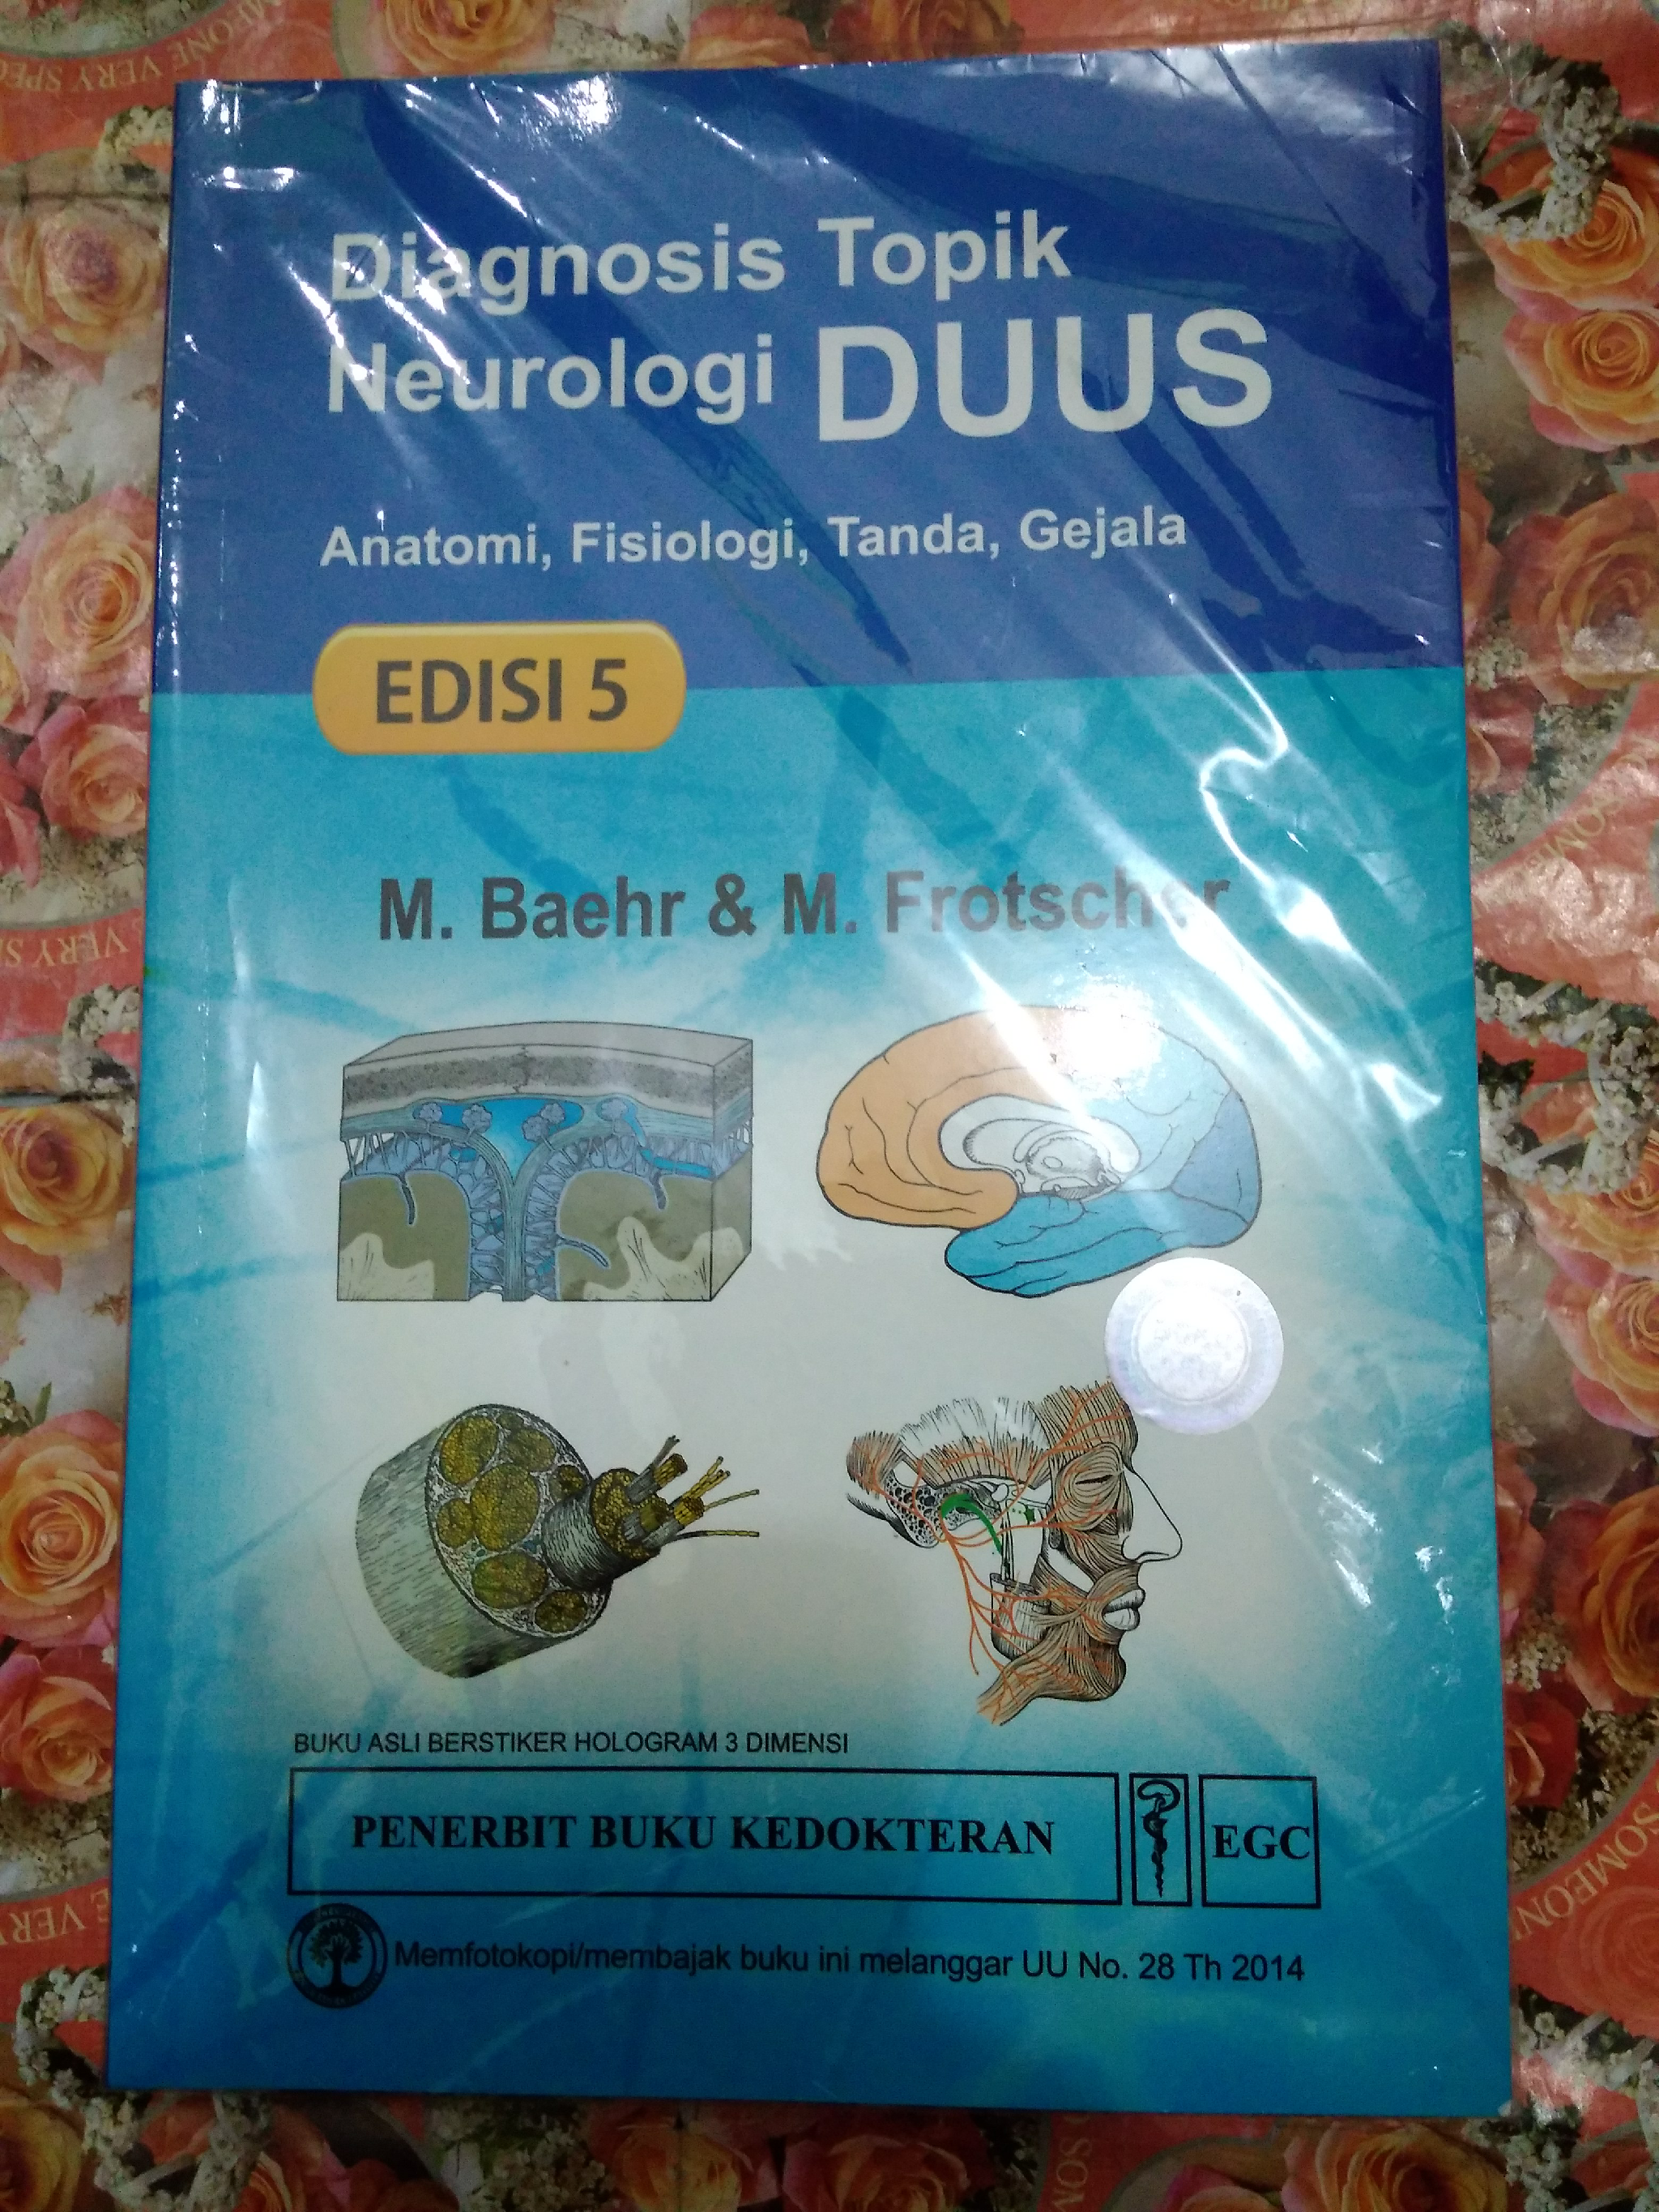 Diagnosis Topik Neurologi DUUS ed 5